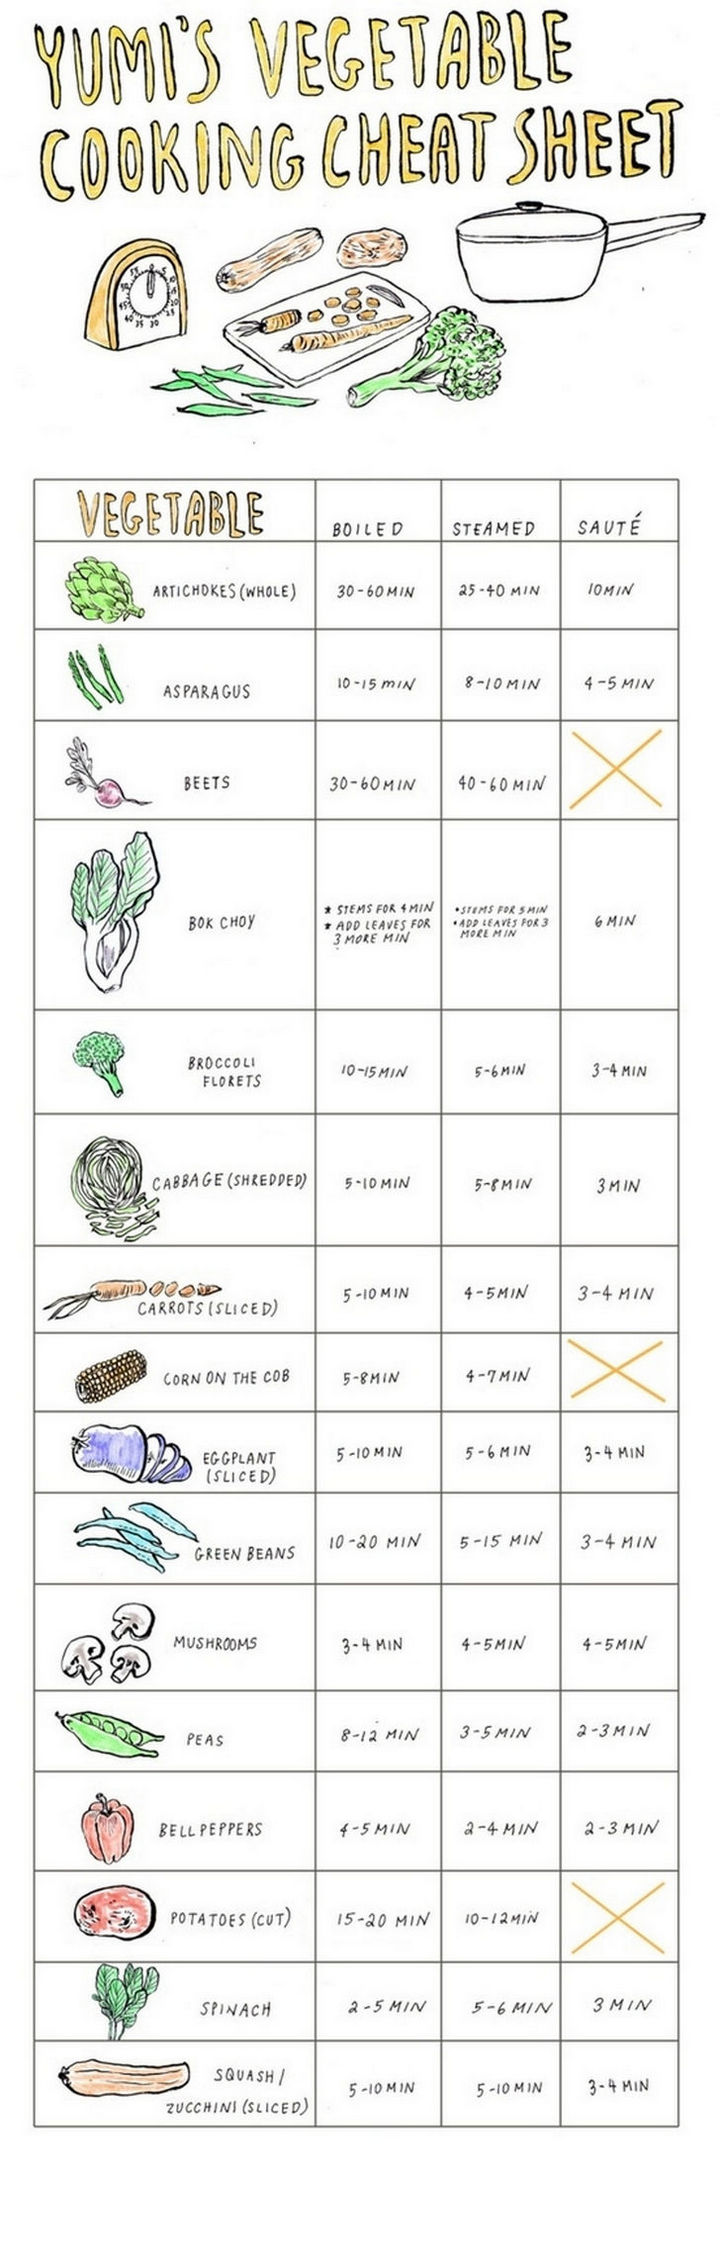 15 Kitchen Cheat Sheets - Yumi's vegetable cooking cheat sheet.